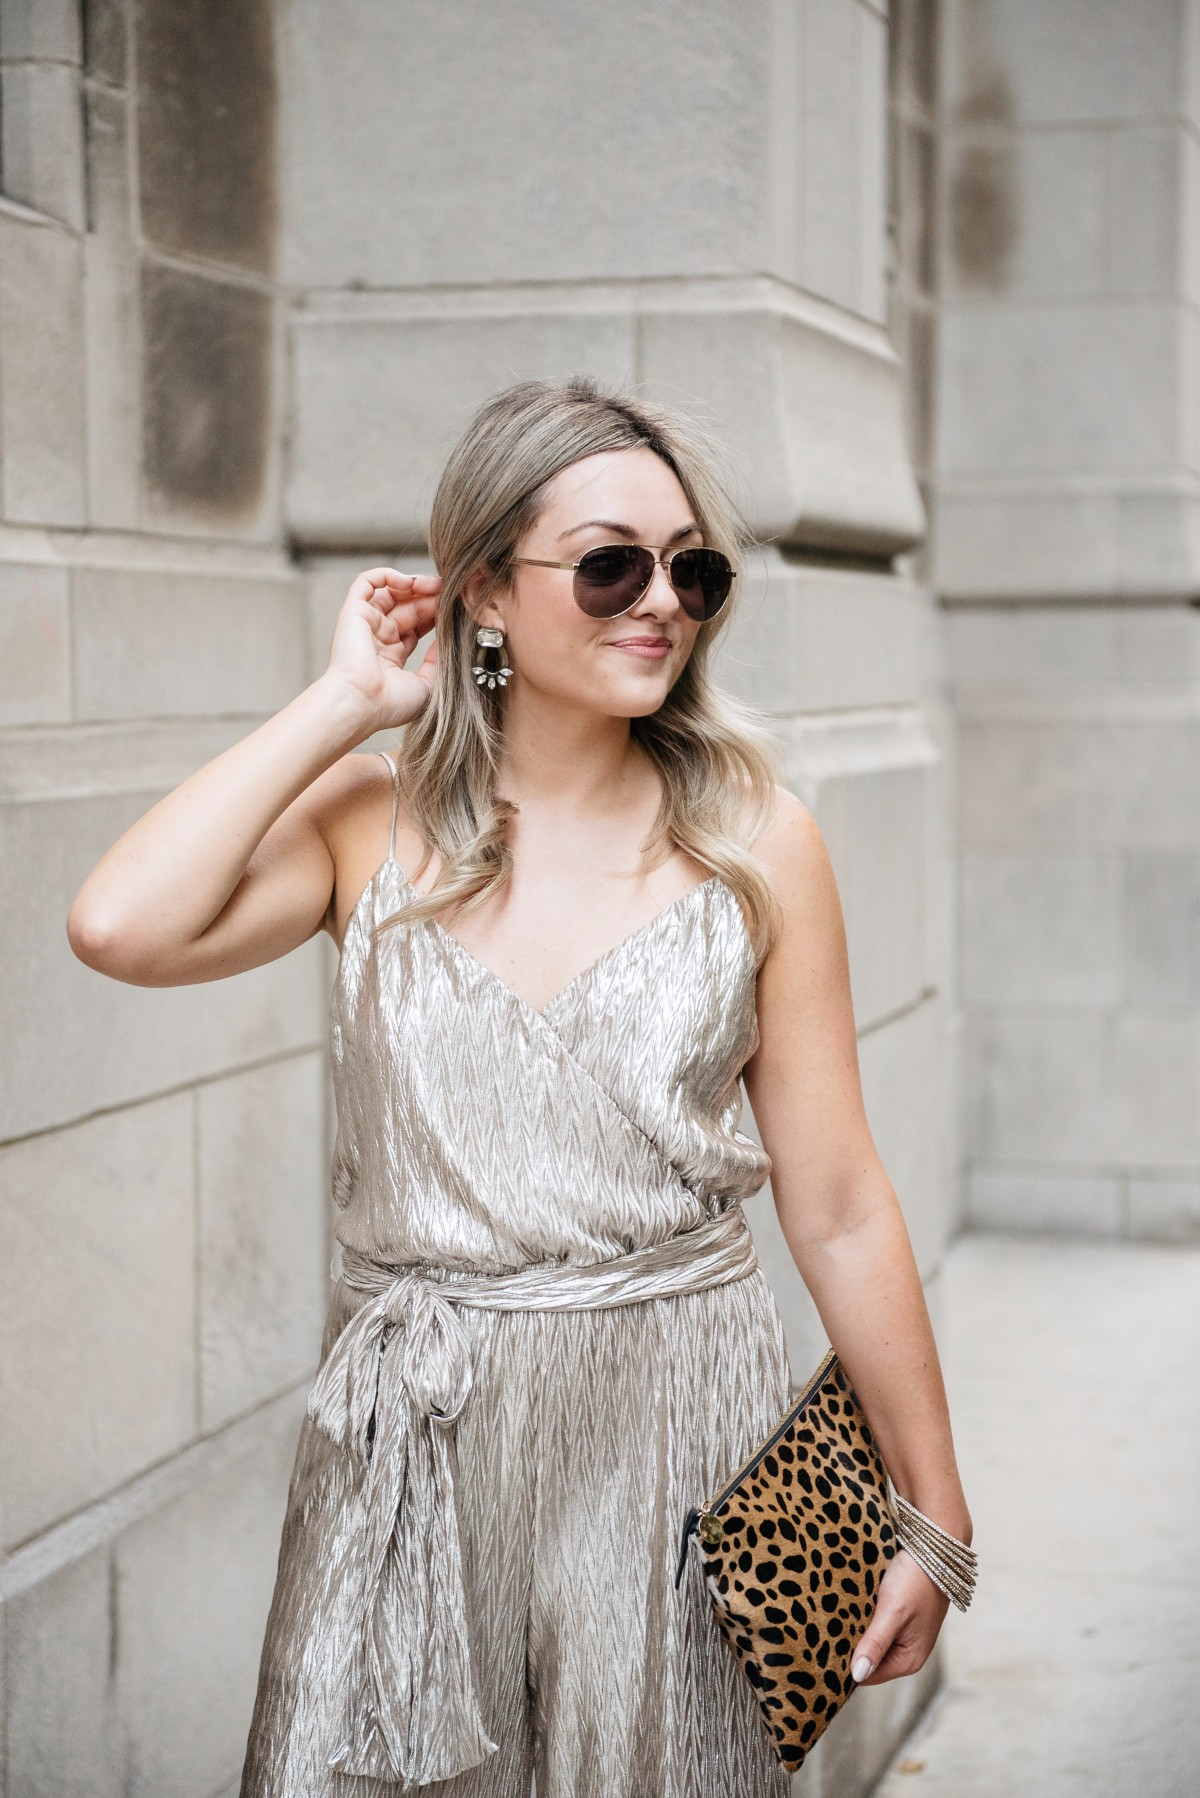 Bows & Sequins styling a metallic gold Plissé jumpsuit from Nordstrom with a Clare V leopard clutch, pavé bangles, Loren Hope earrings, and Gucci sunglasses.